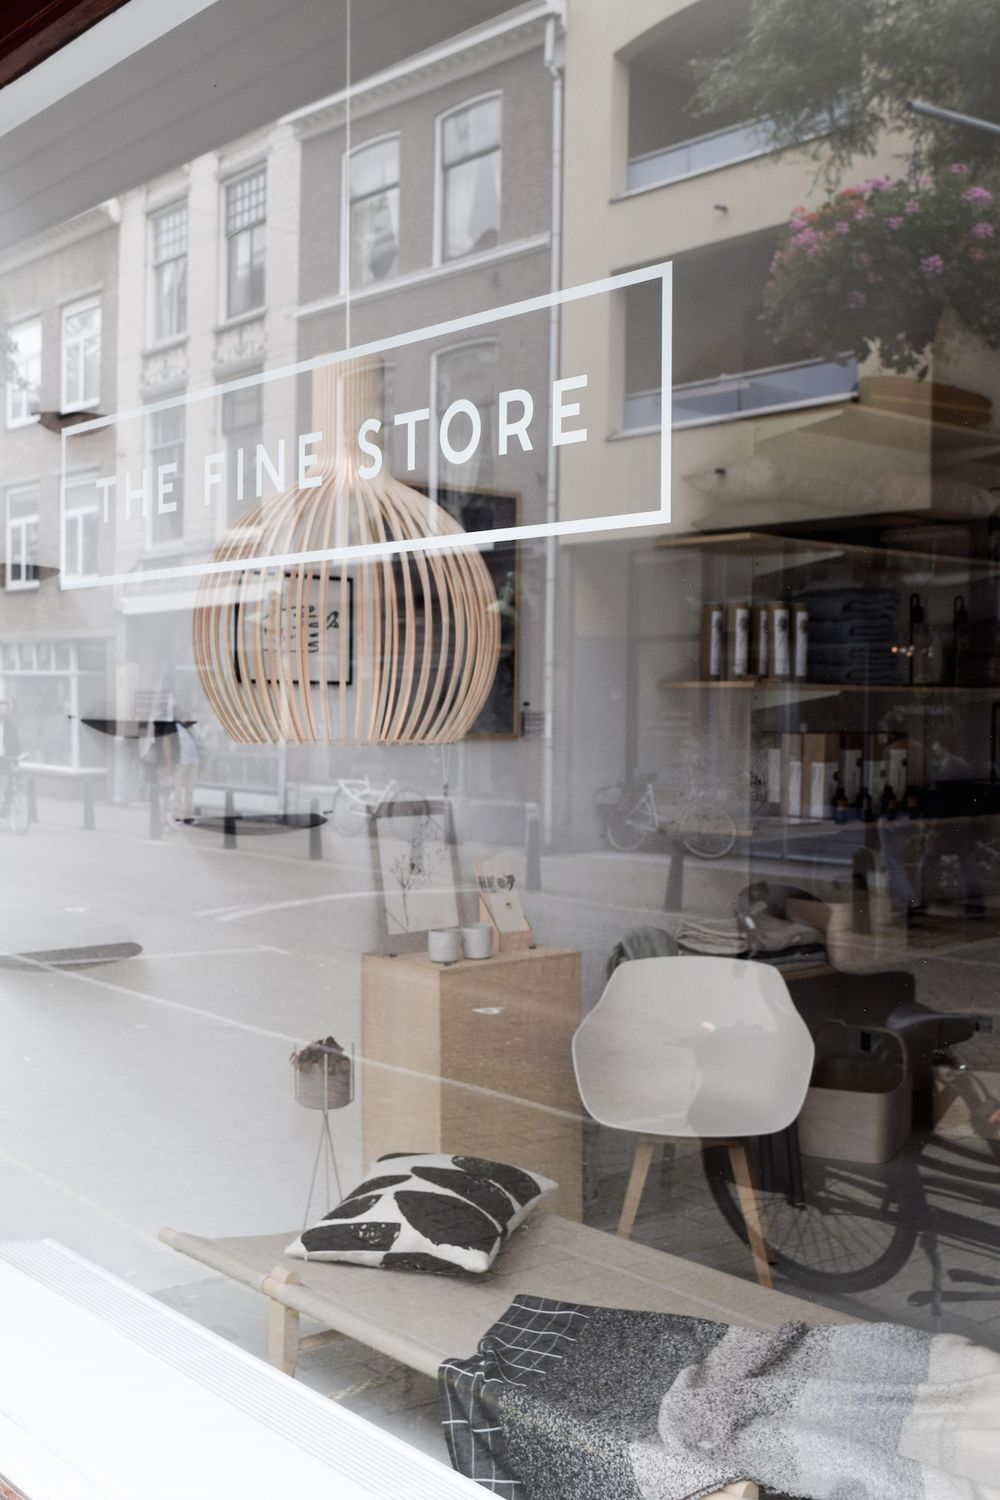 The Fine Store, The Hague